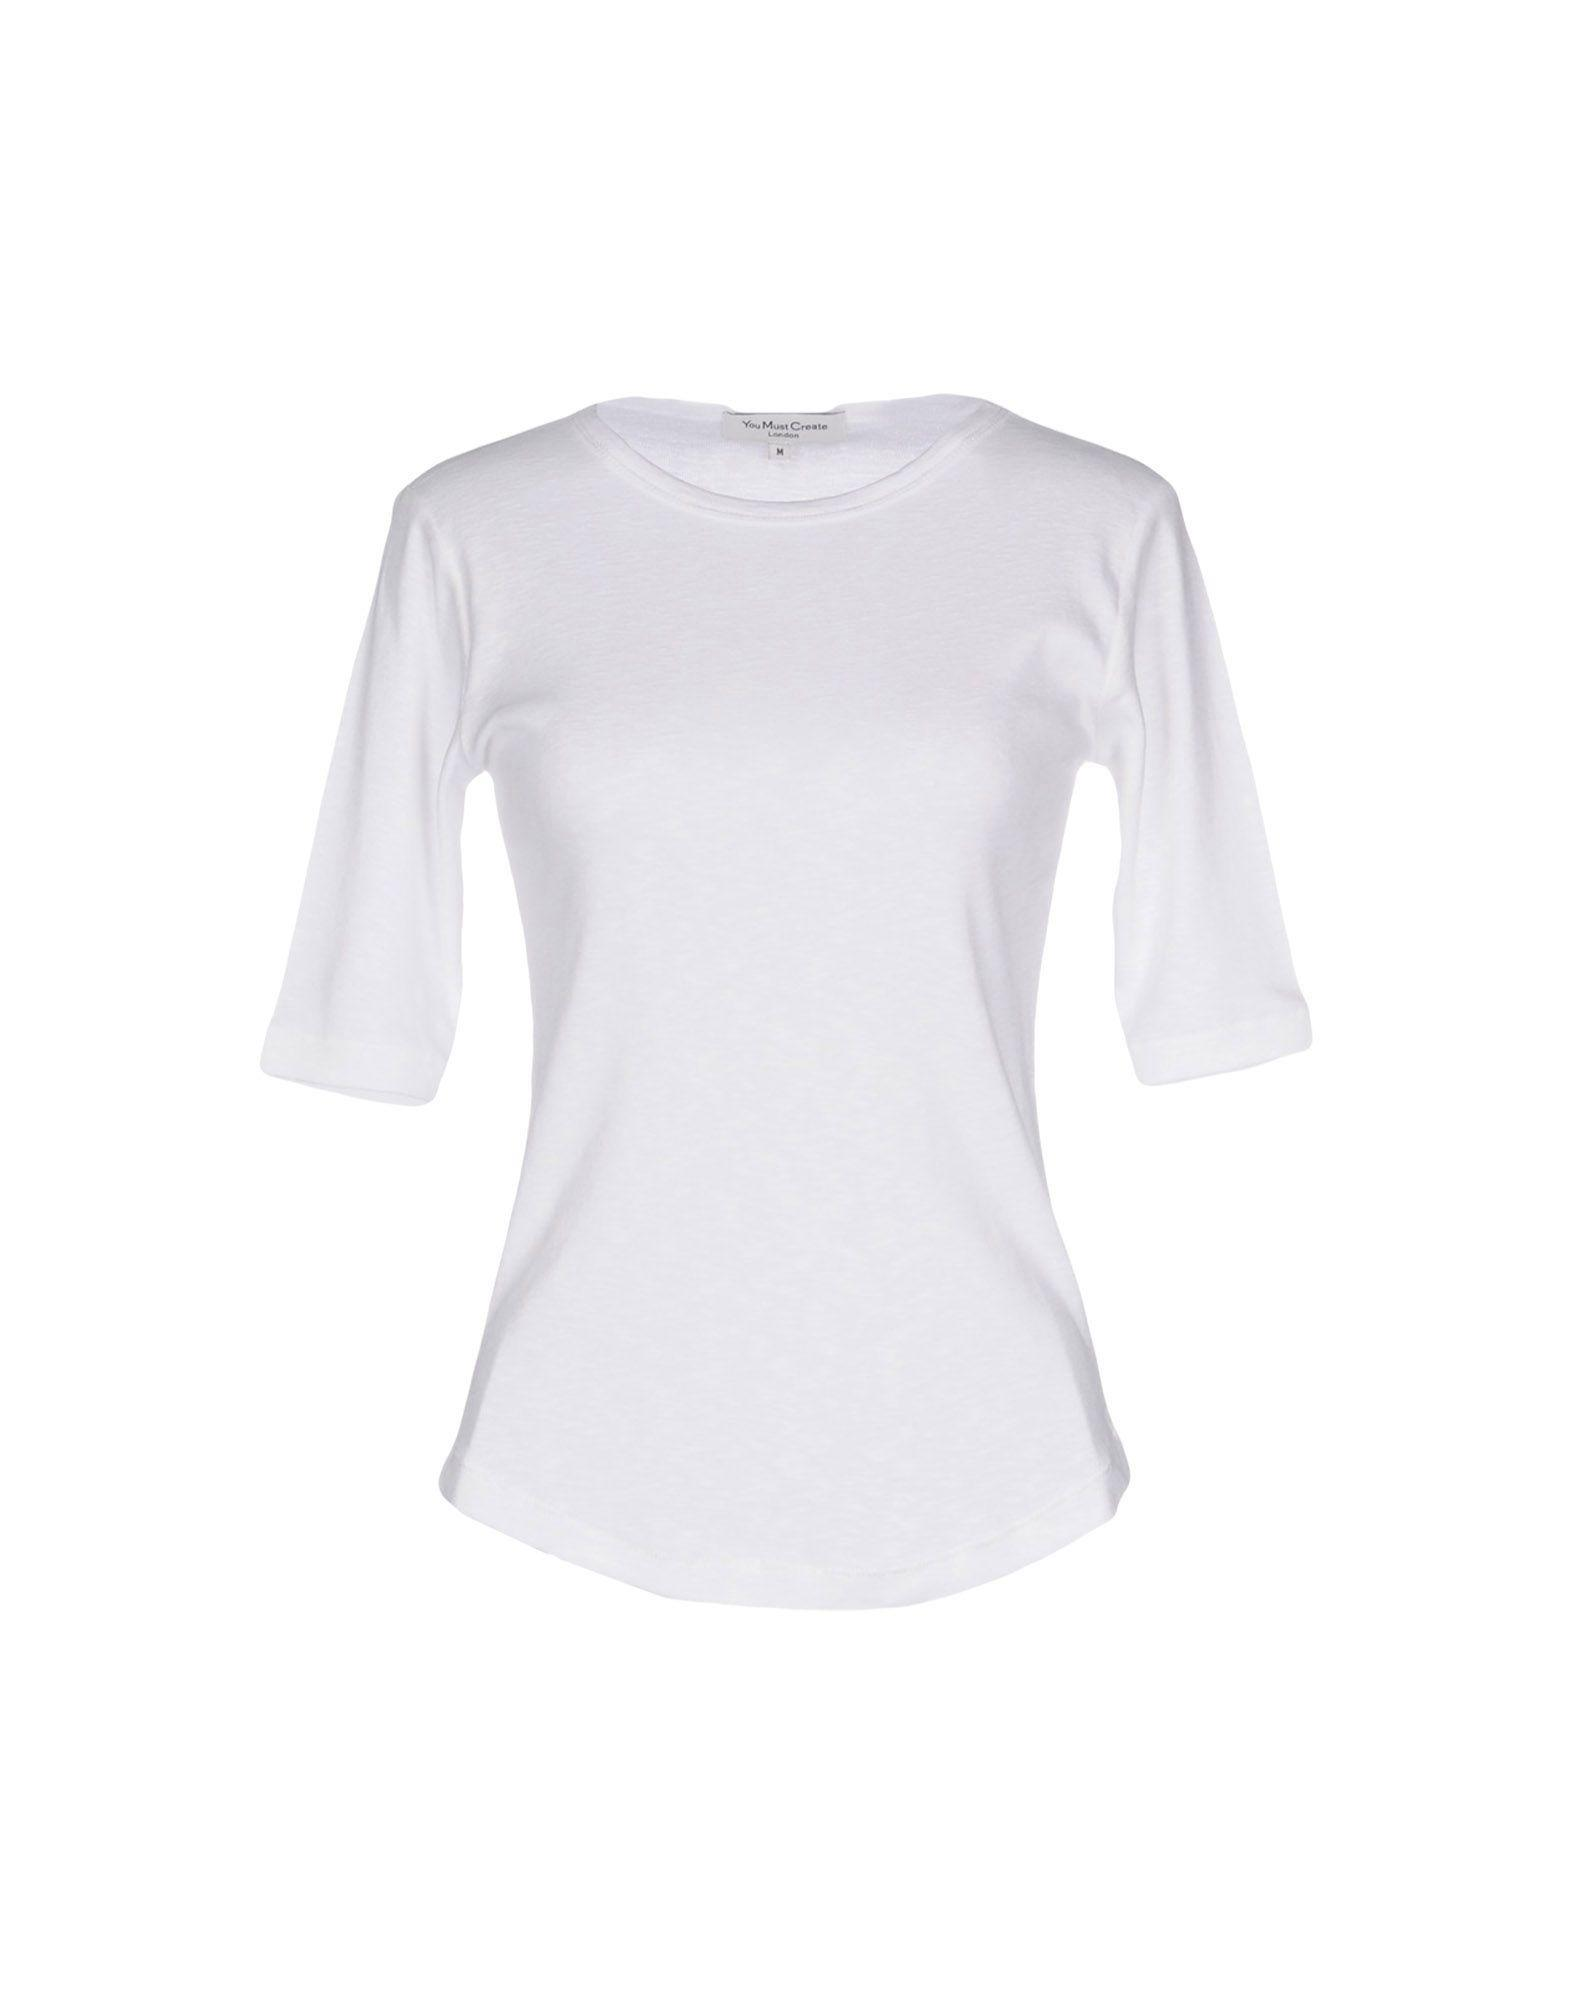 Ymc You Must Create T-shirts In White